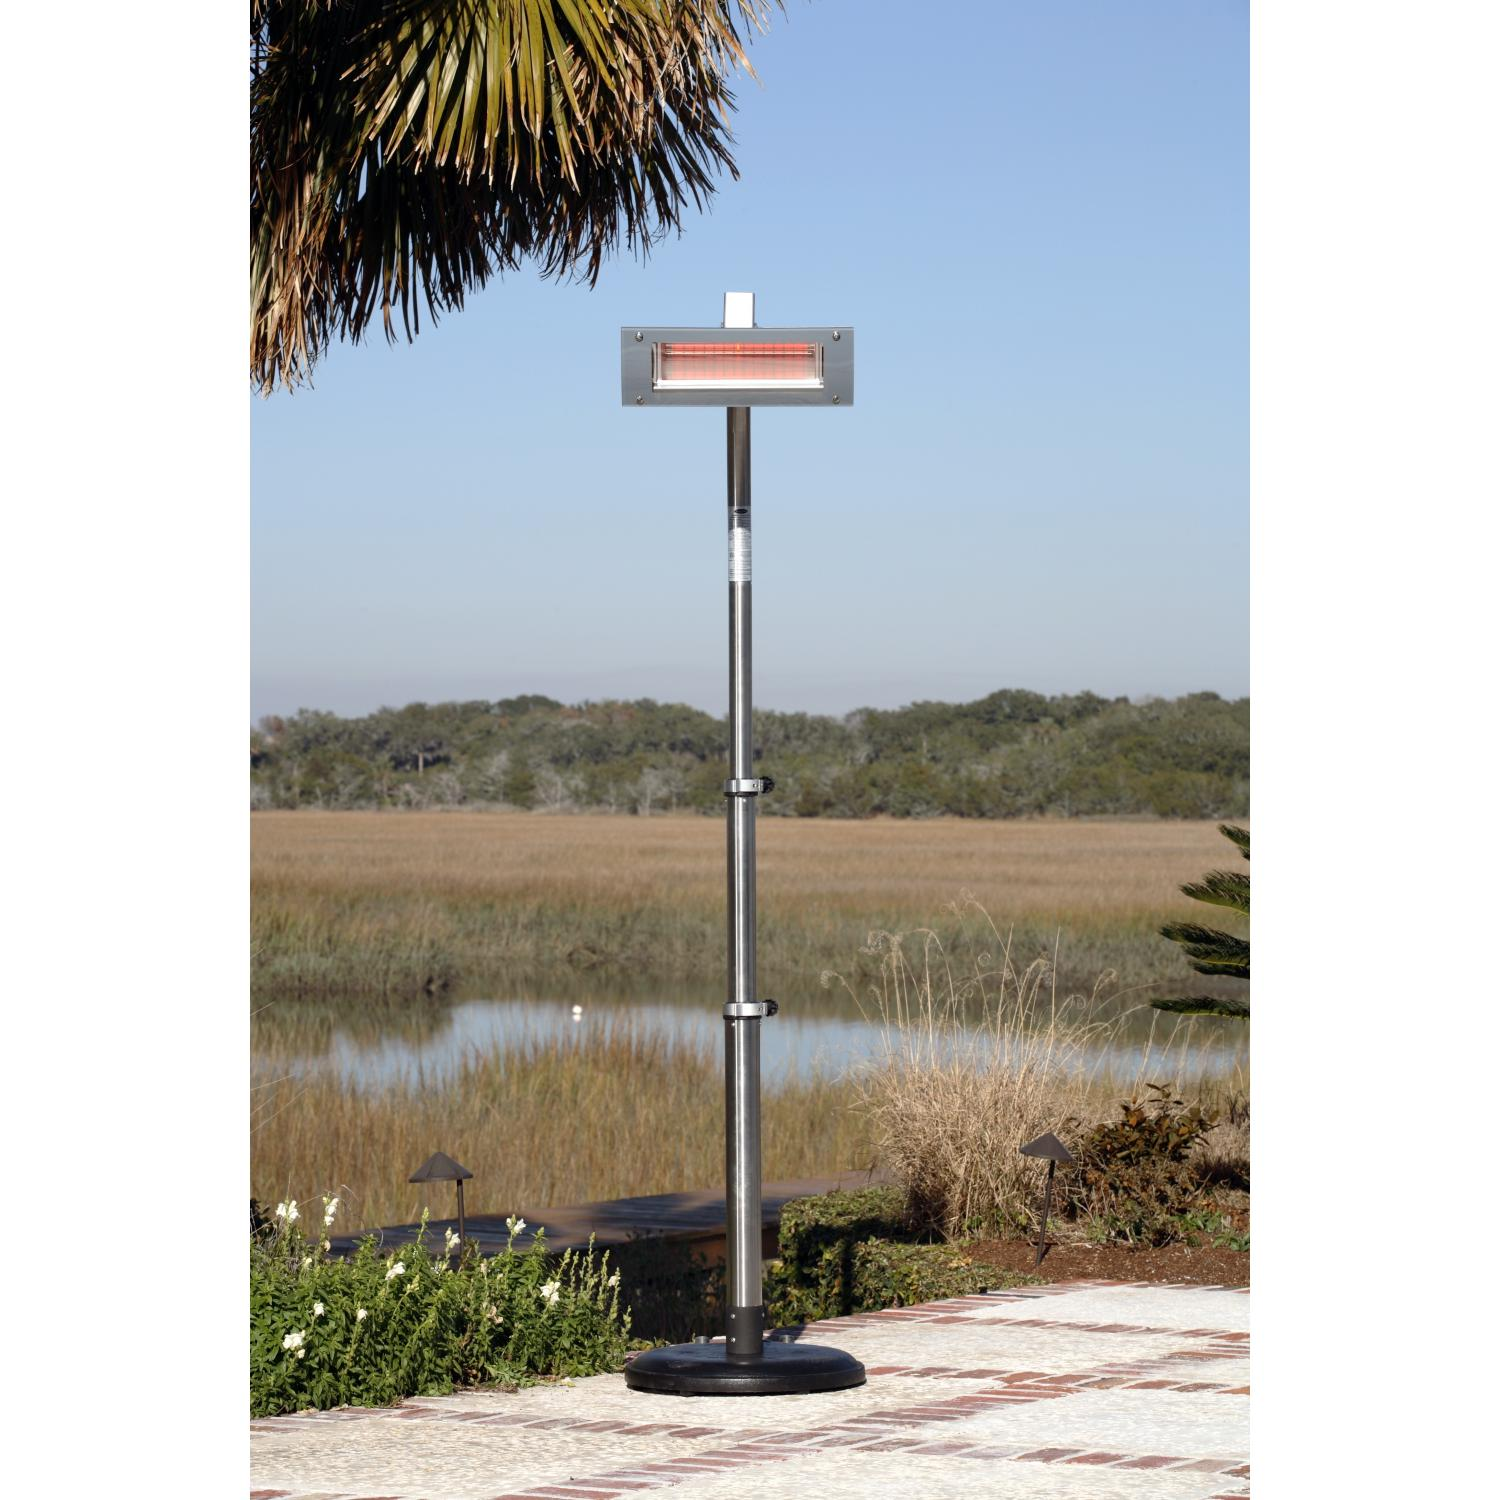 Fire Sense 1500 Watt Electric Infrared Patio Heater With Telescoping Offset Pole And Glass Front / PVC Cover - Stainless Steel